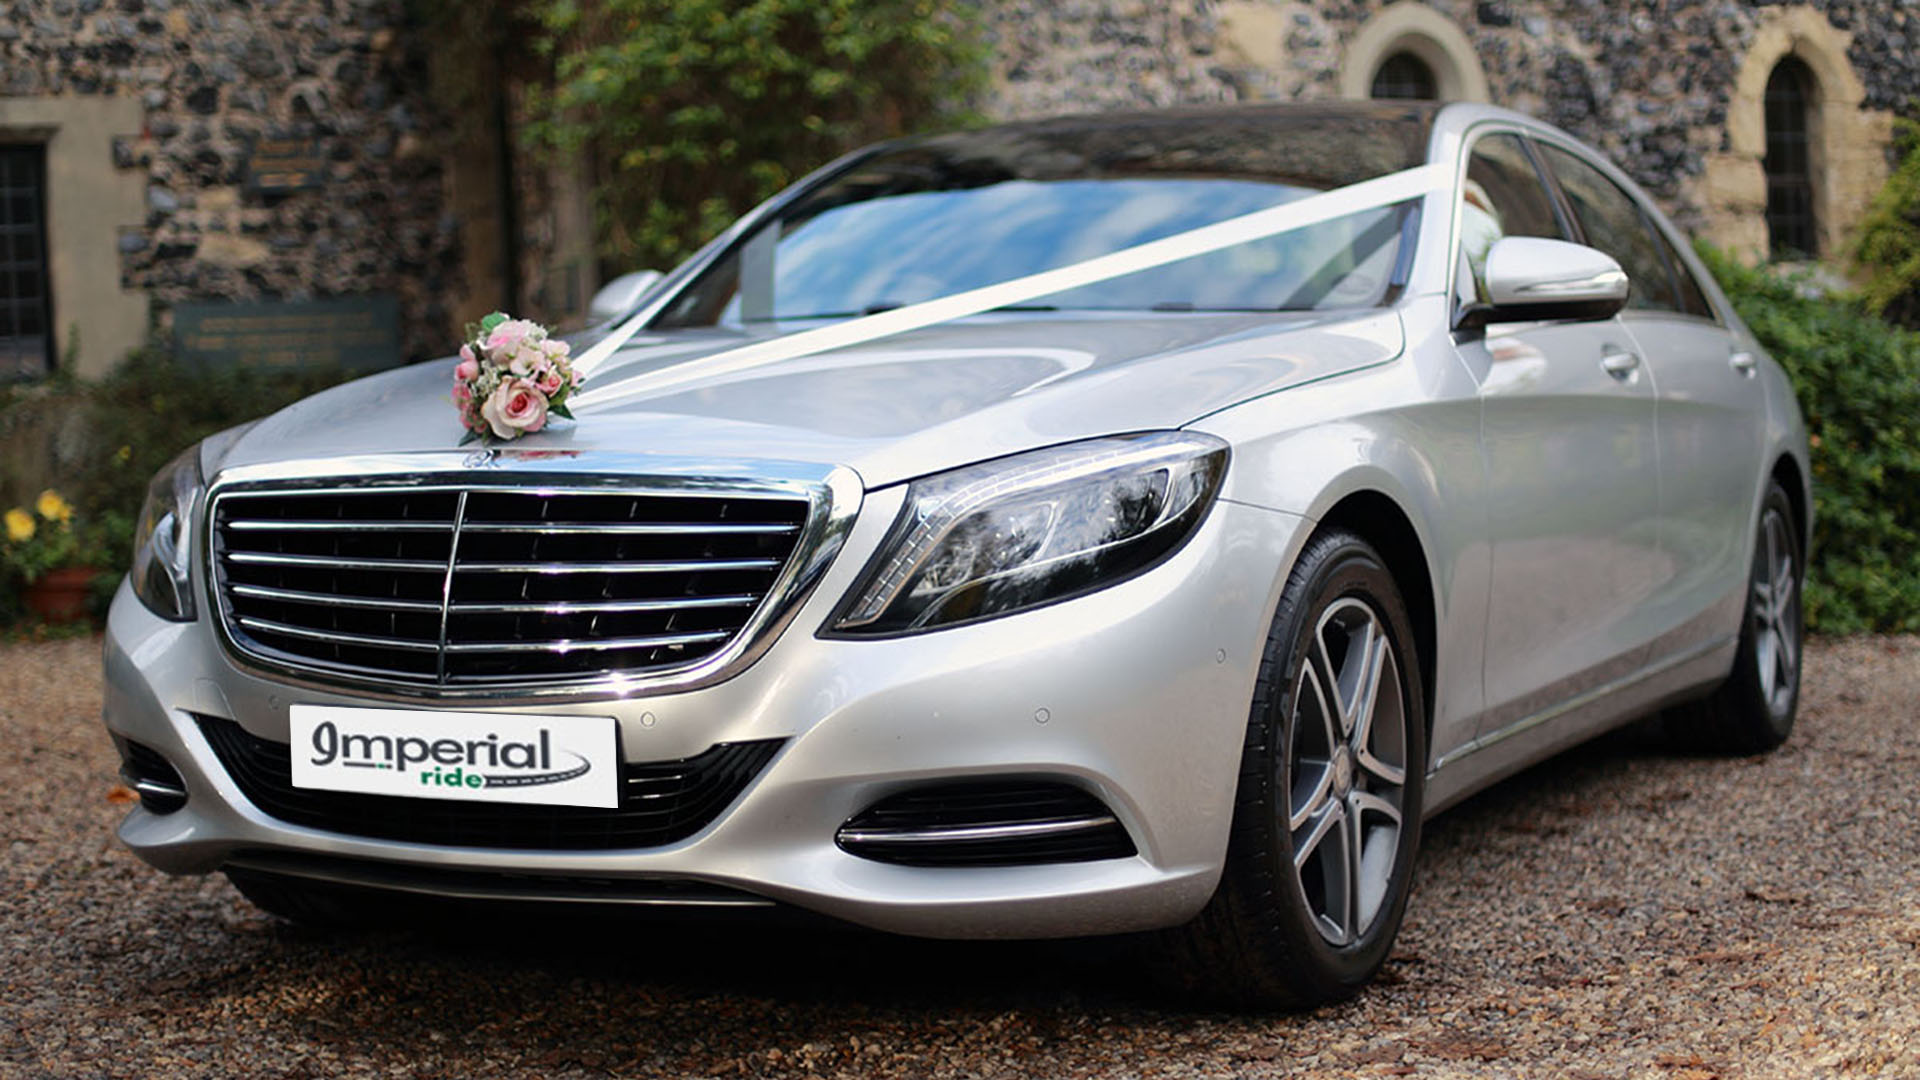 s-class-wedding-hire-in-haringey